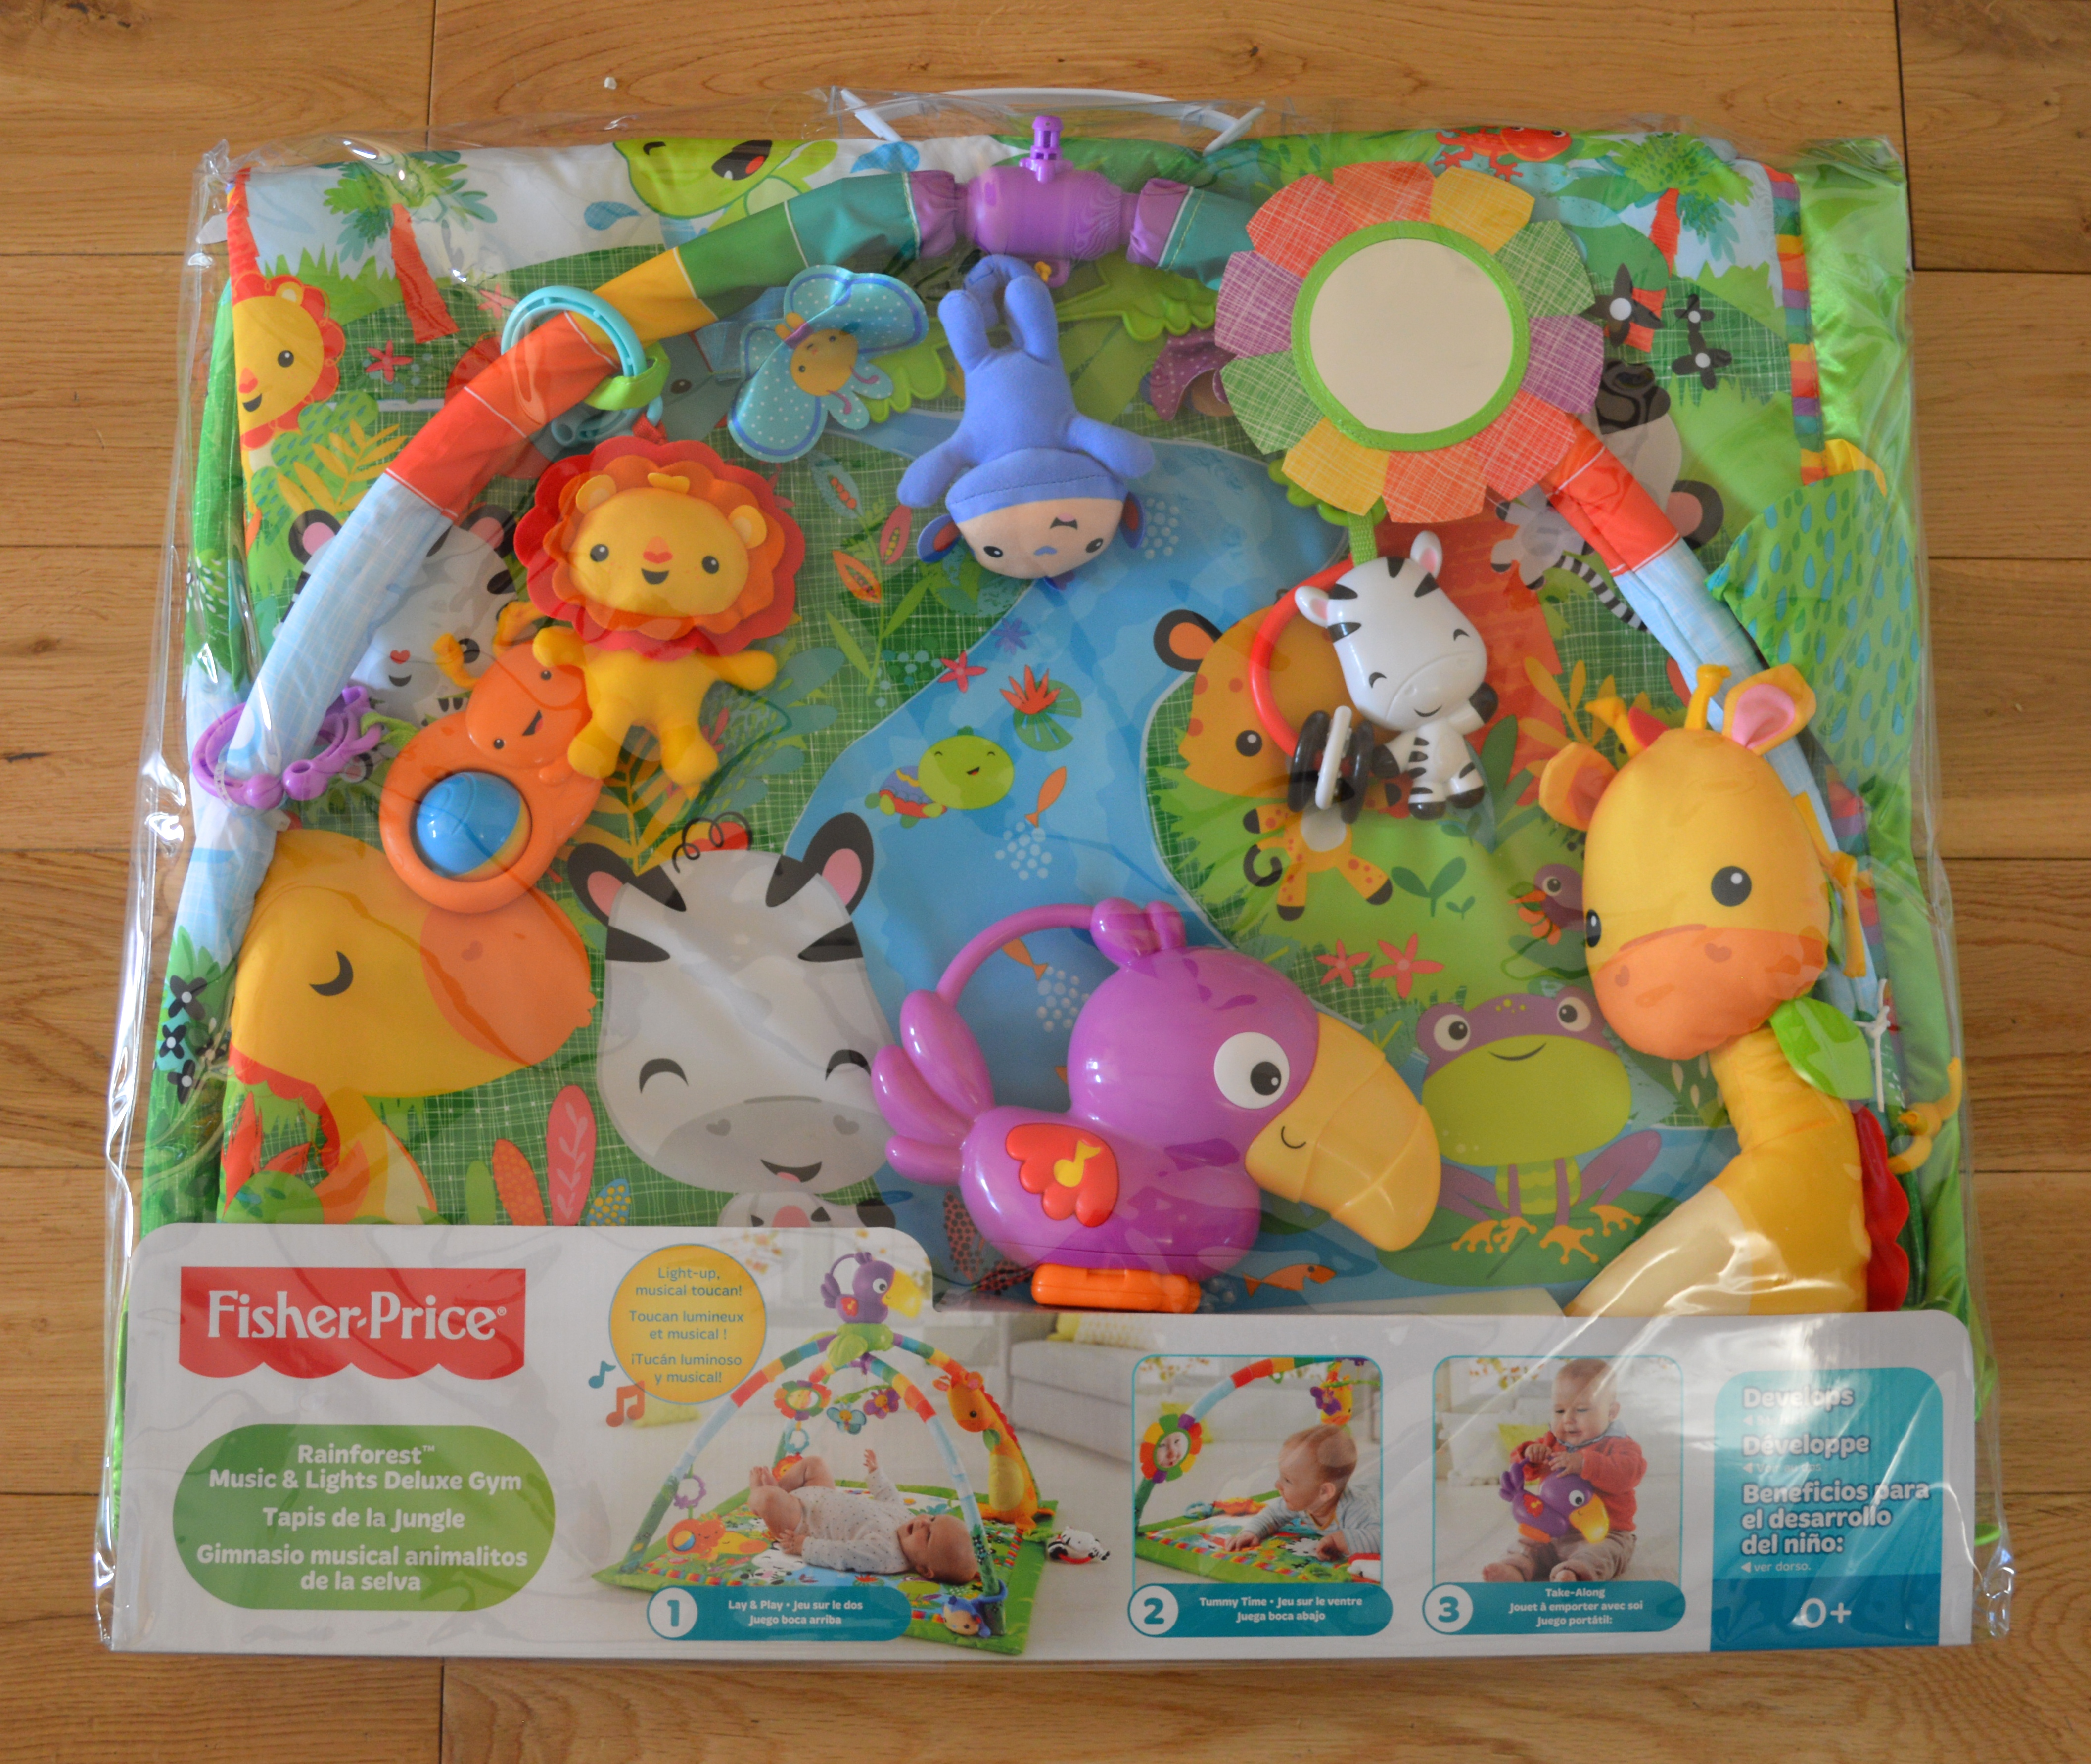 e6842f26442 Fisher-Price Rainforest Deluxe Gym Review - Not A Frumpy Mum